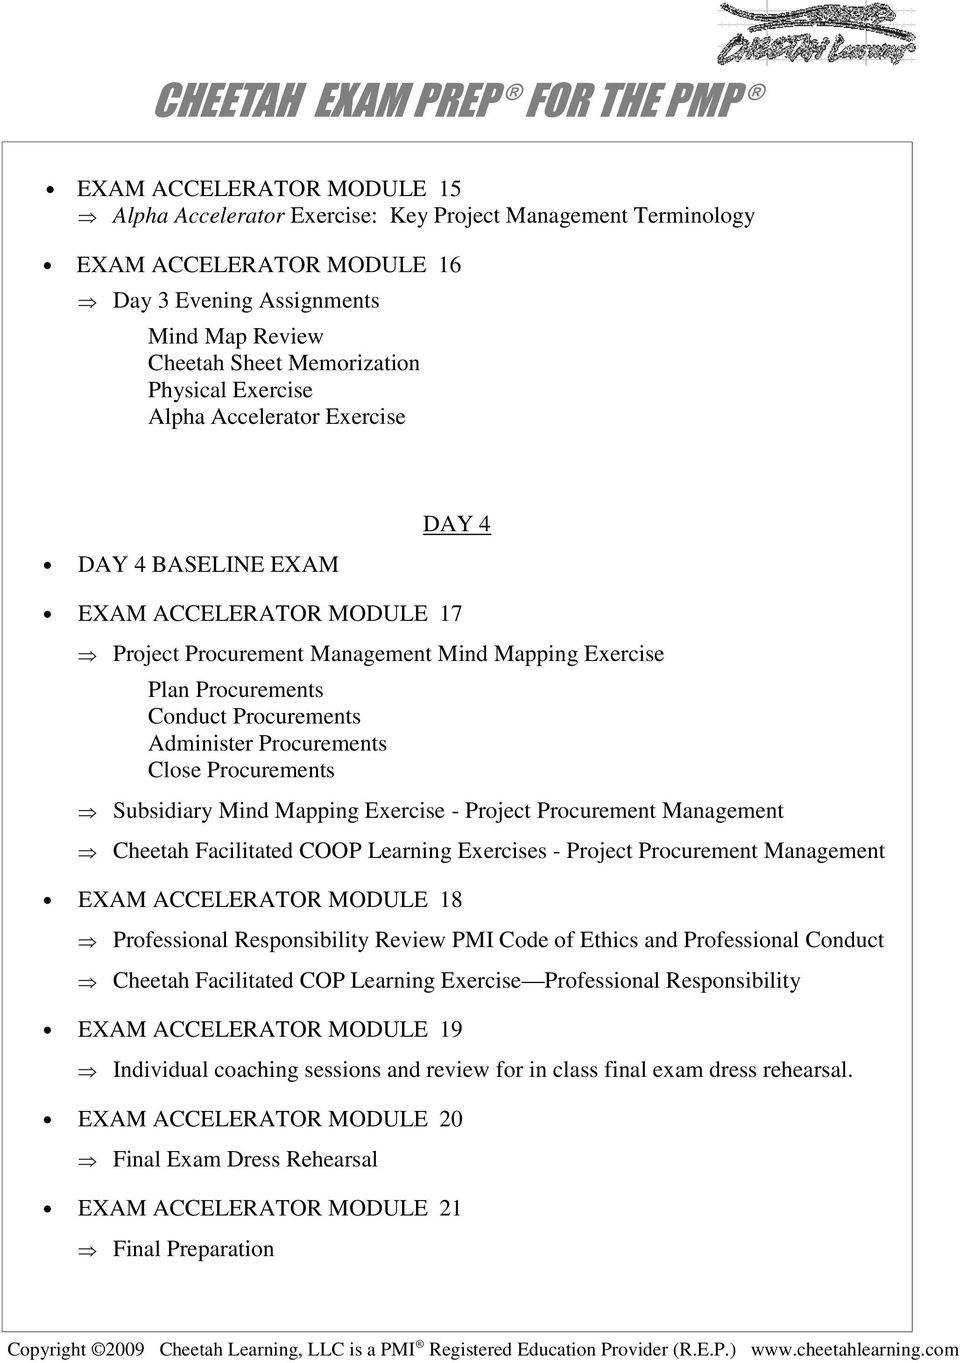 Procurements Close Procurements Subsidiary Mind Mapping Exercise - Project Procurement Management Cheetah Facilitated COOP Learning Exercises - Project Procurement Management EXAM ACCELERATOR MODULE